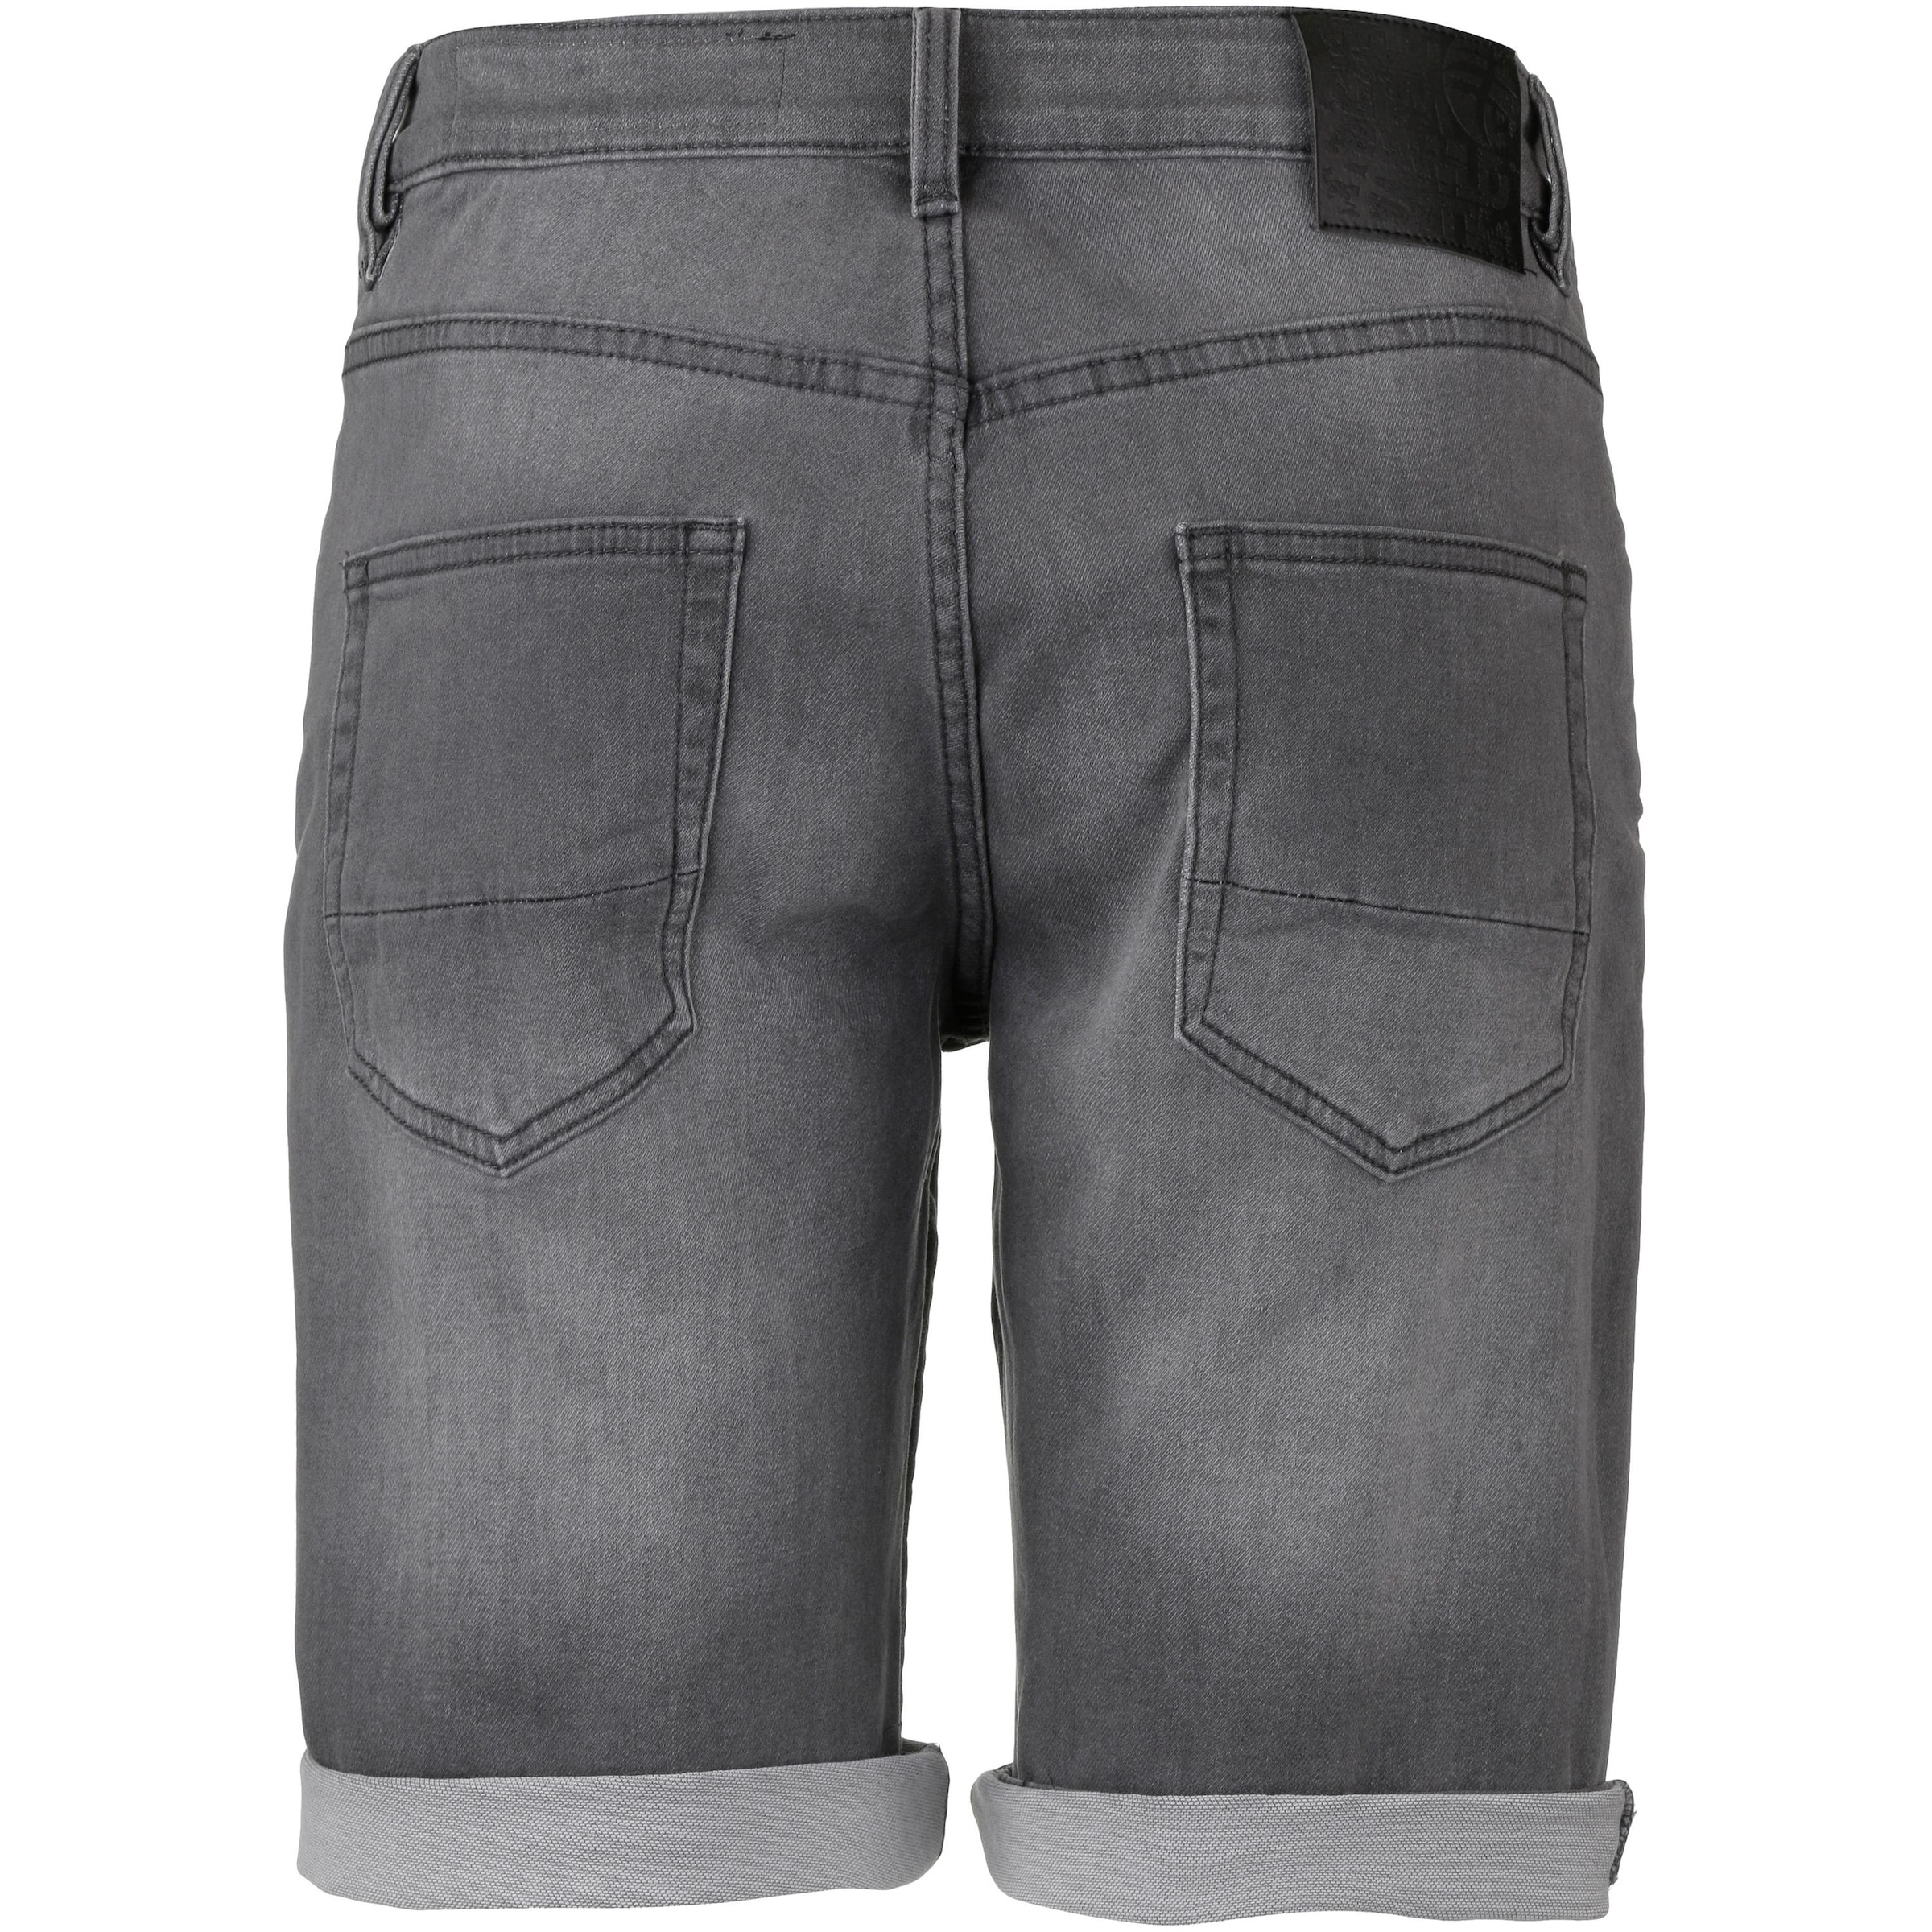 Wld Grey To Go' Denim Jeansshorts In 'time exoCrBd